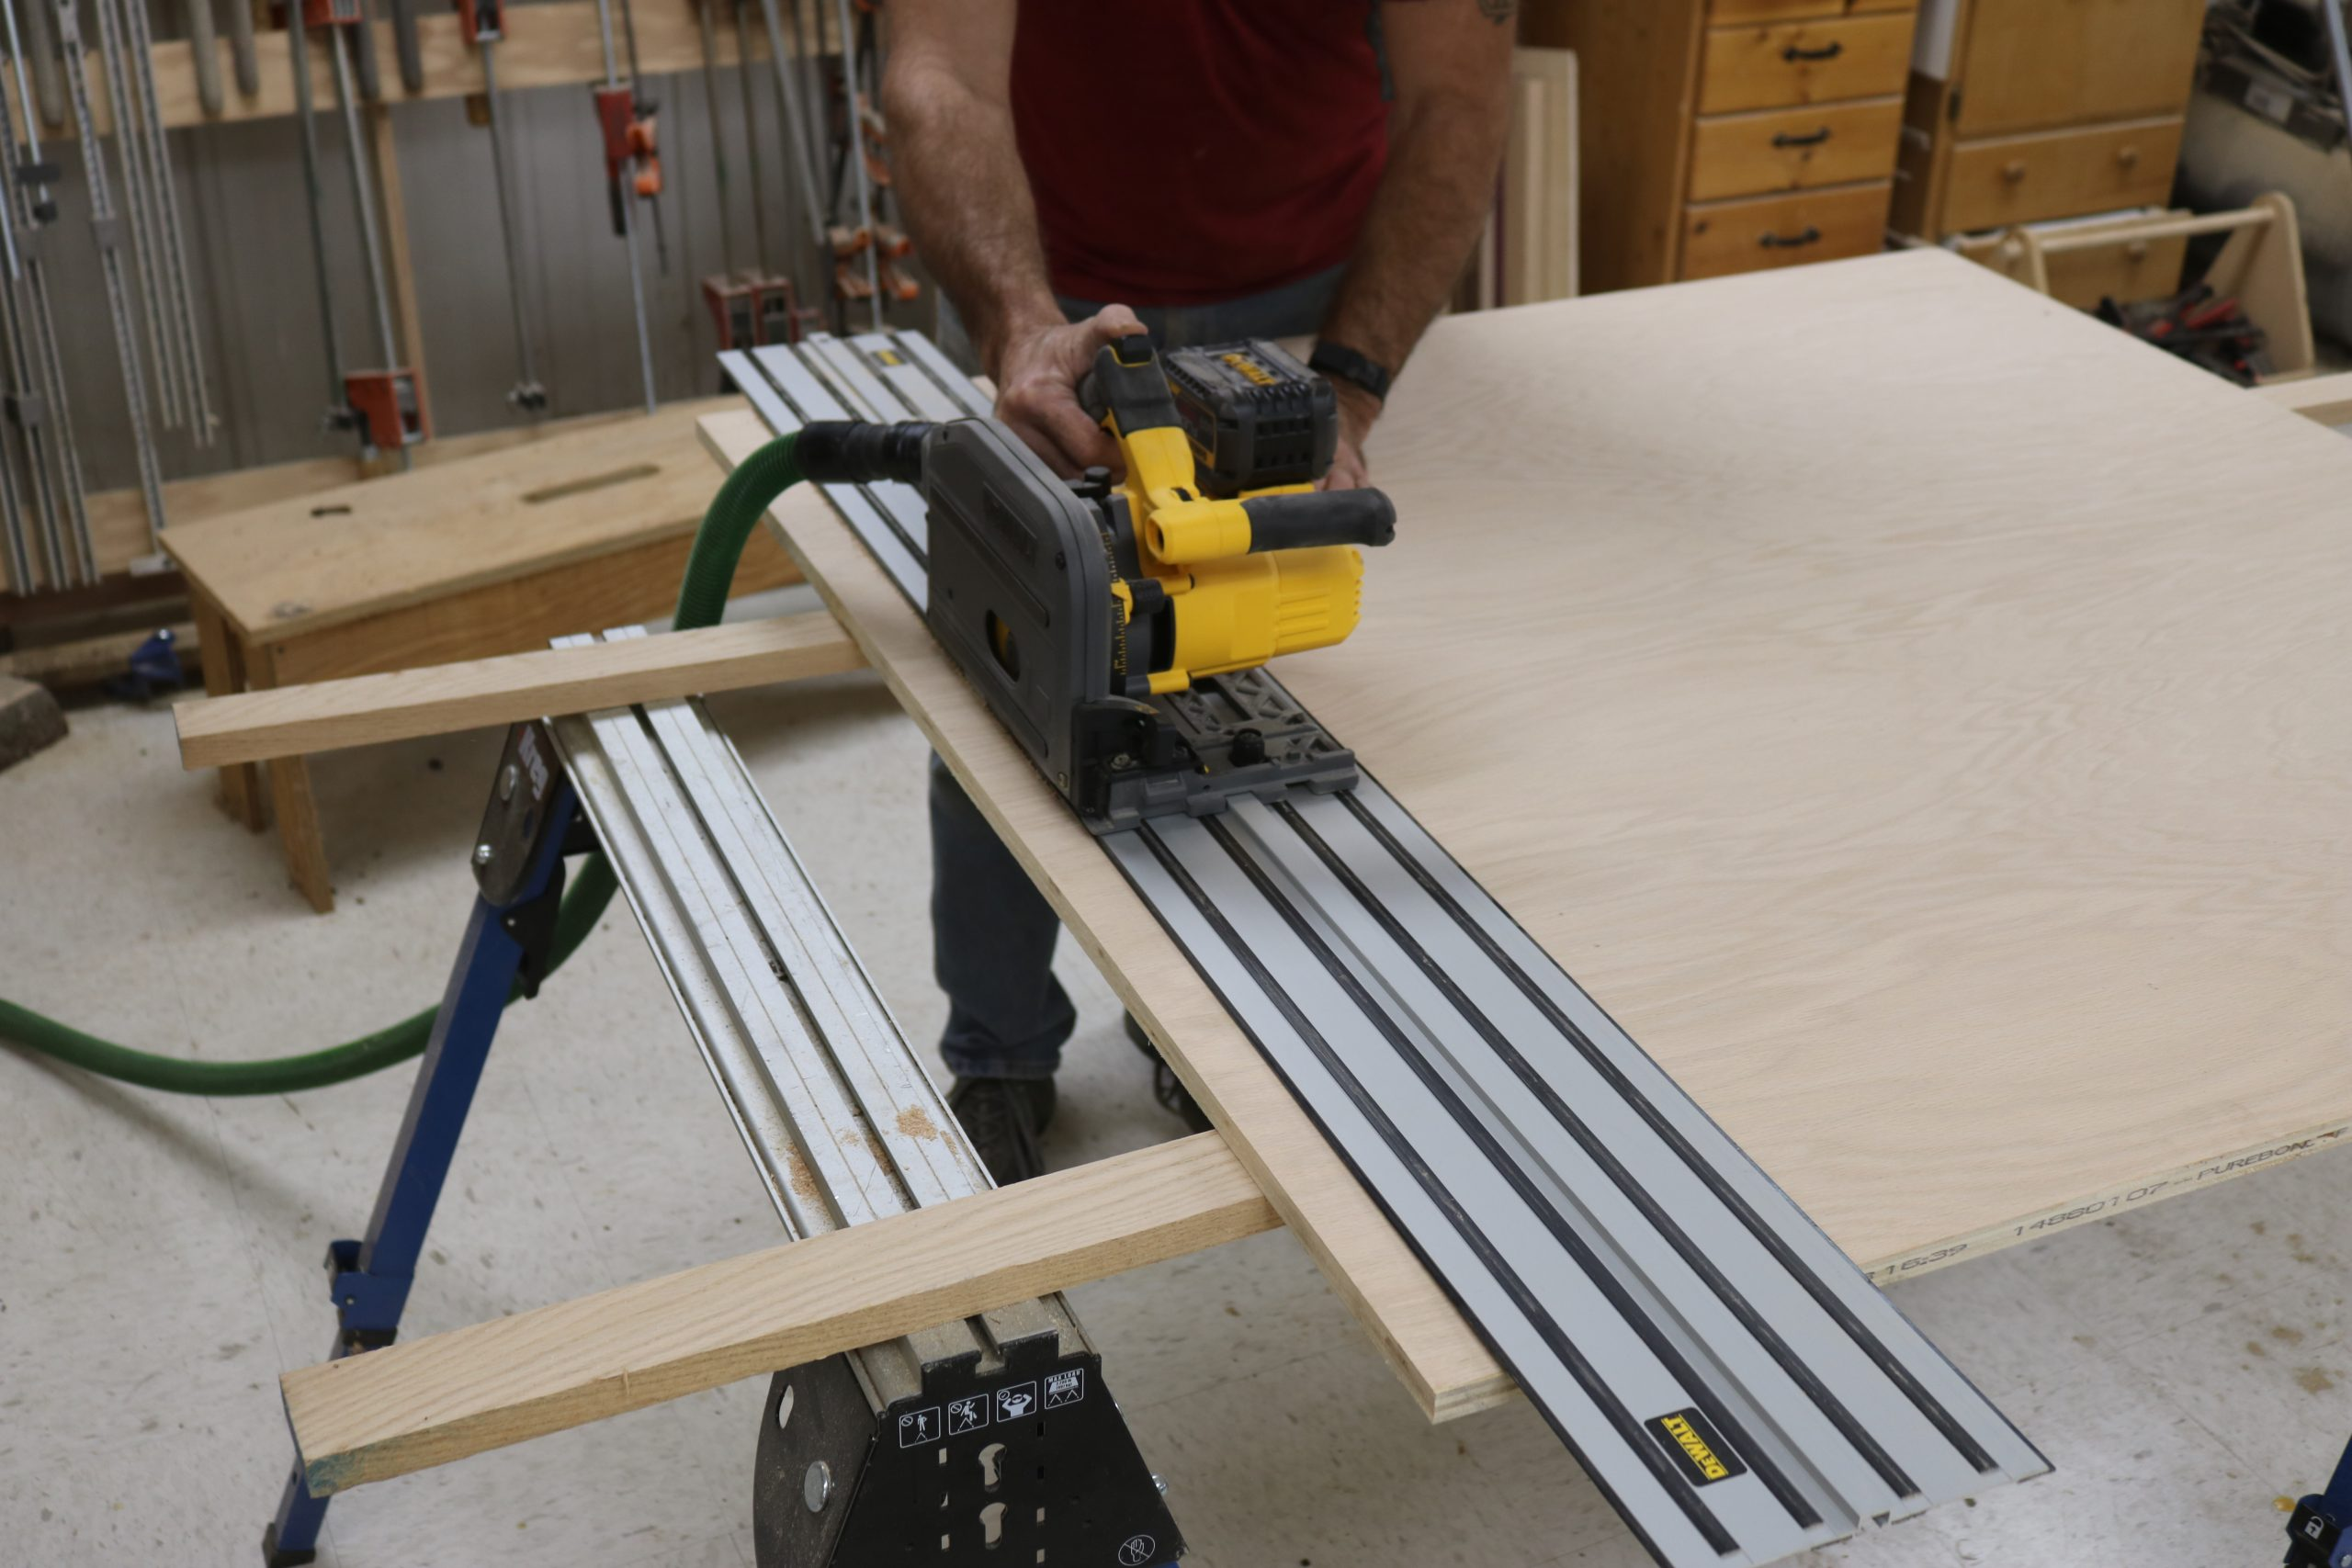 close up of a cordless tool in use